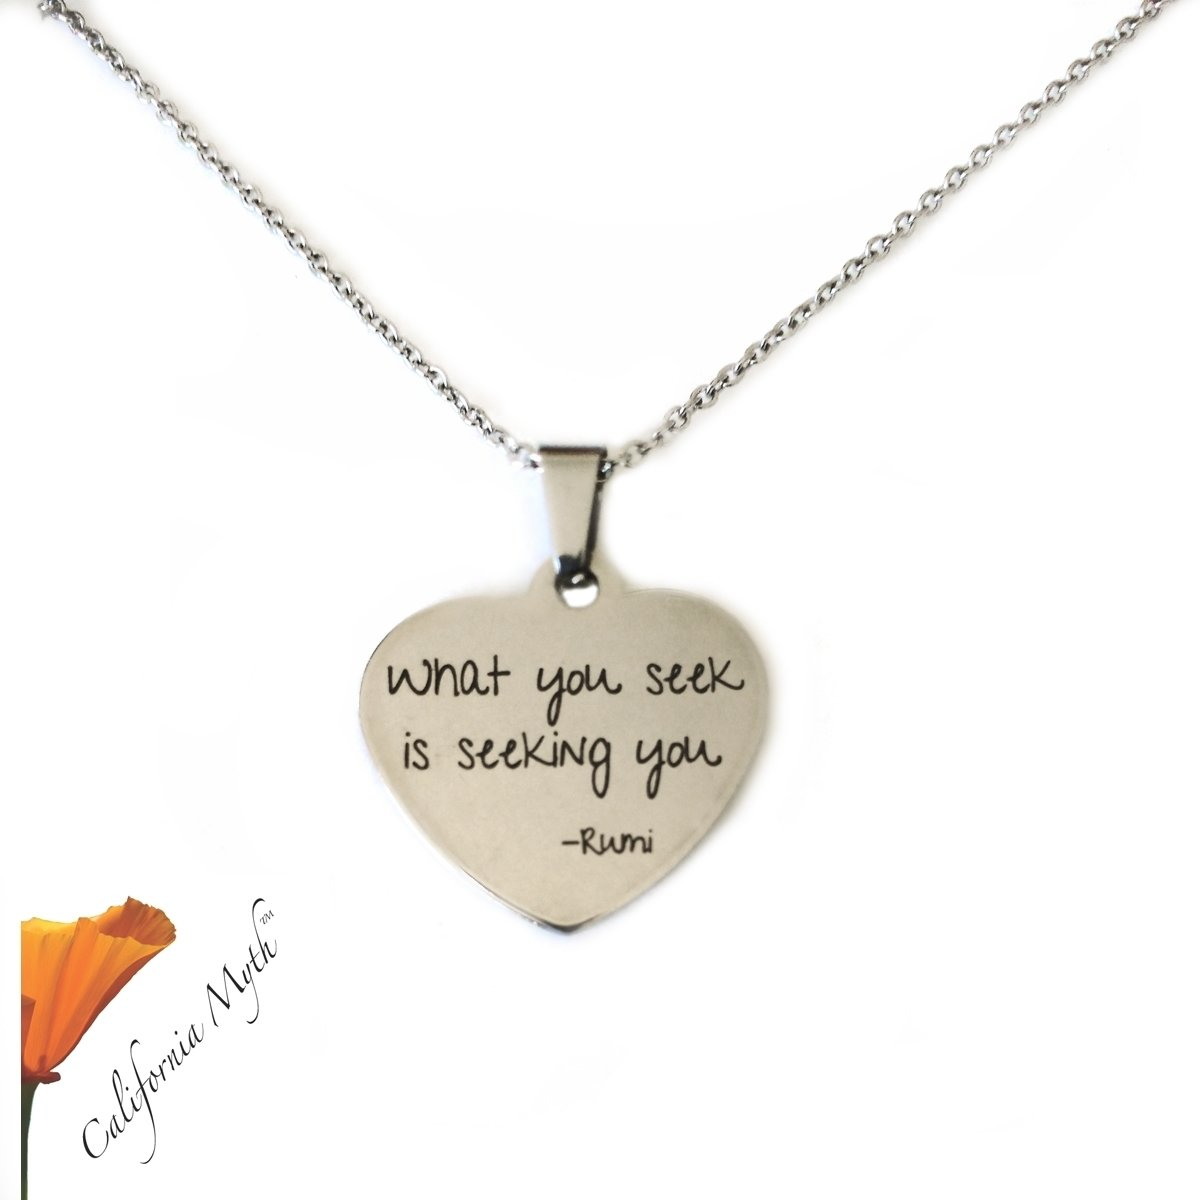 What You Seek Pendant Necklace